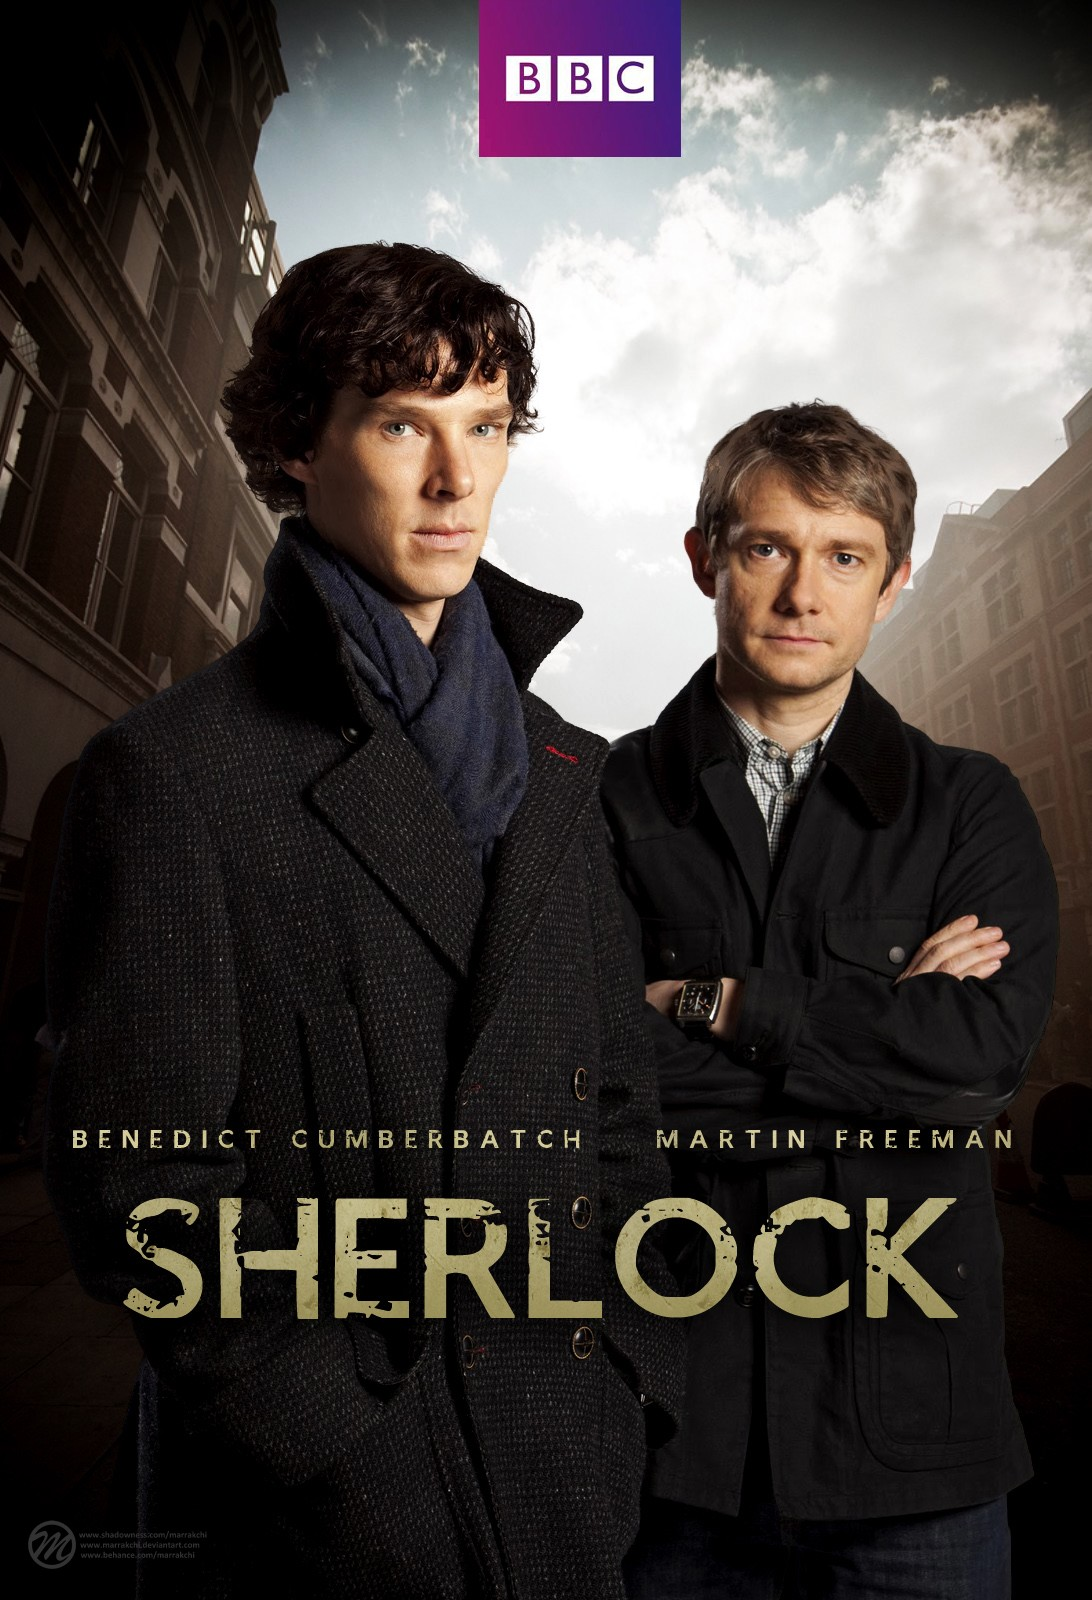 sherlock season 3 download full episodes in hd 720p